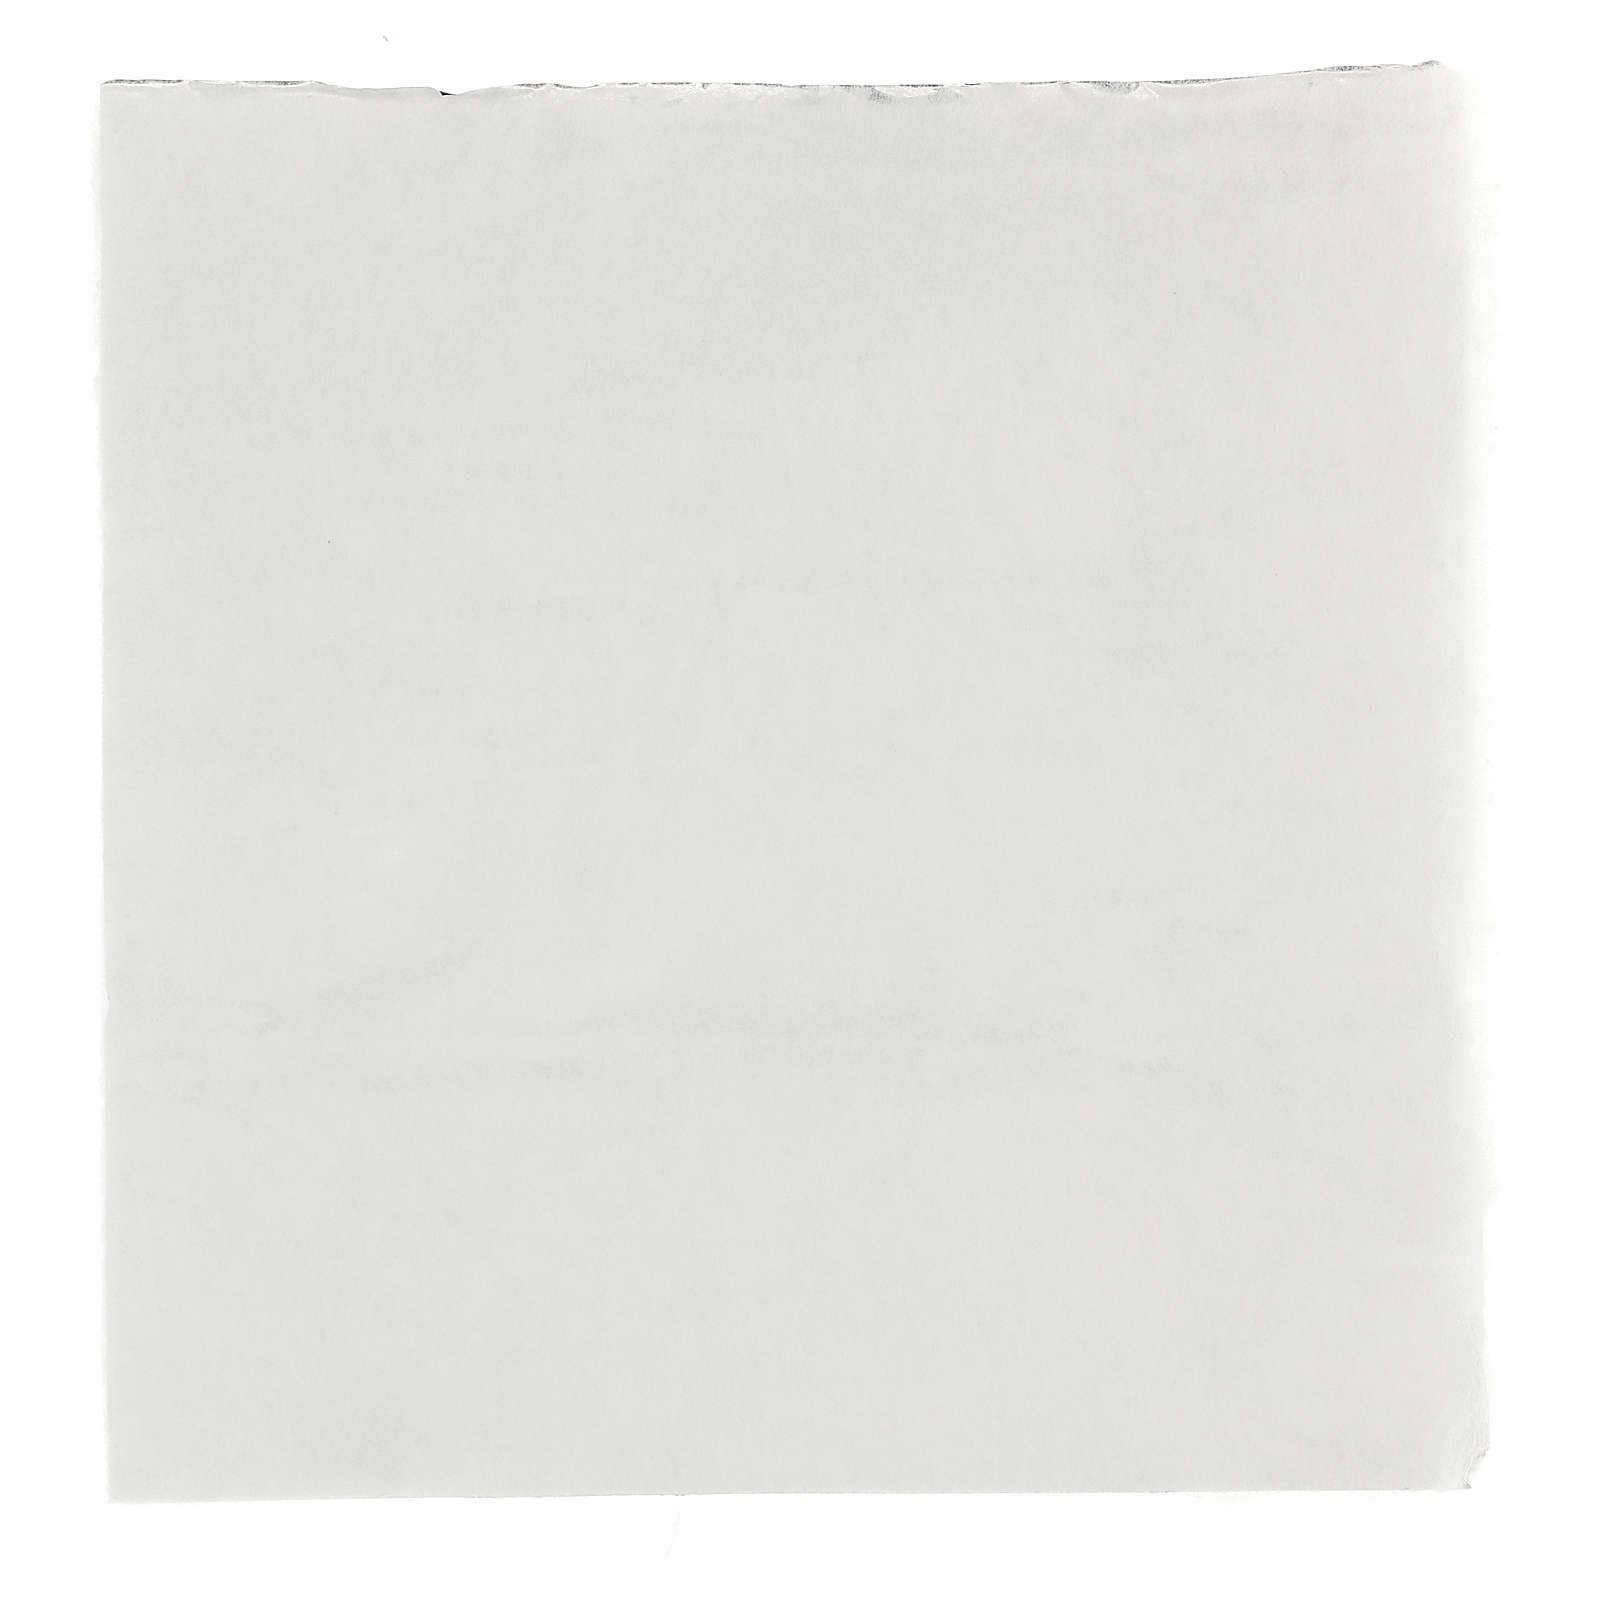 Mouldable snowy paper for Nativity scene 30x30 cm 4